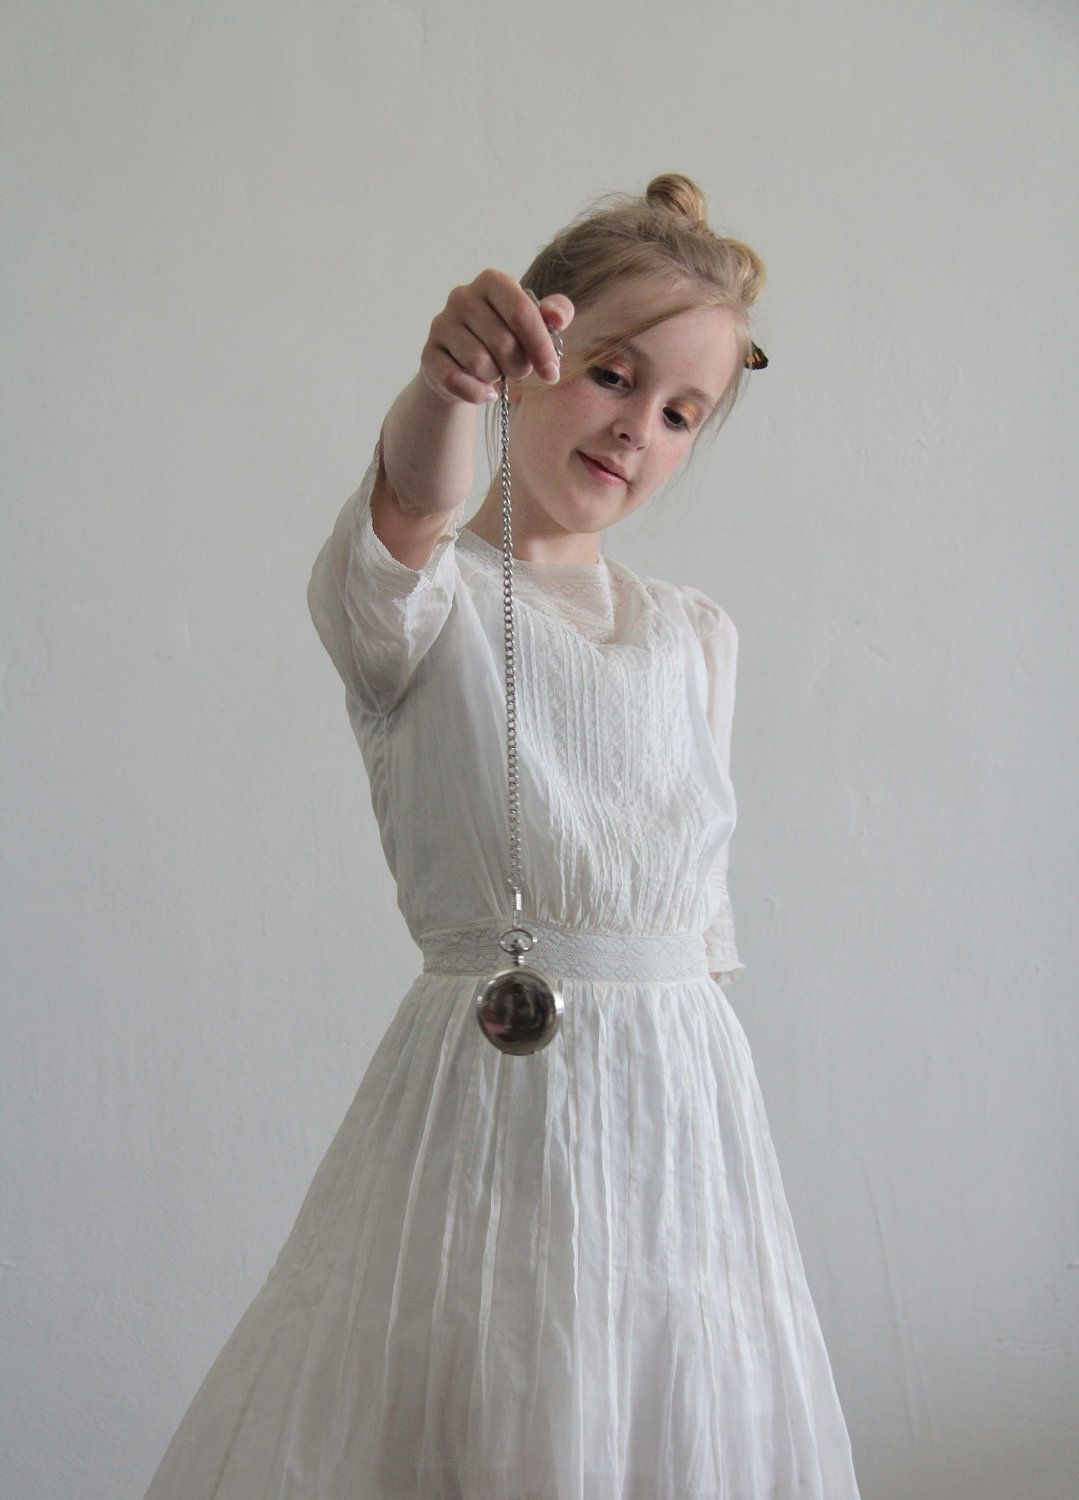 e6a697a7fd70 Antique Girls Dress . Edwardian Era White Cotton and Lace Gown . Childrens  . Flower Girl.  175.00